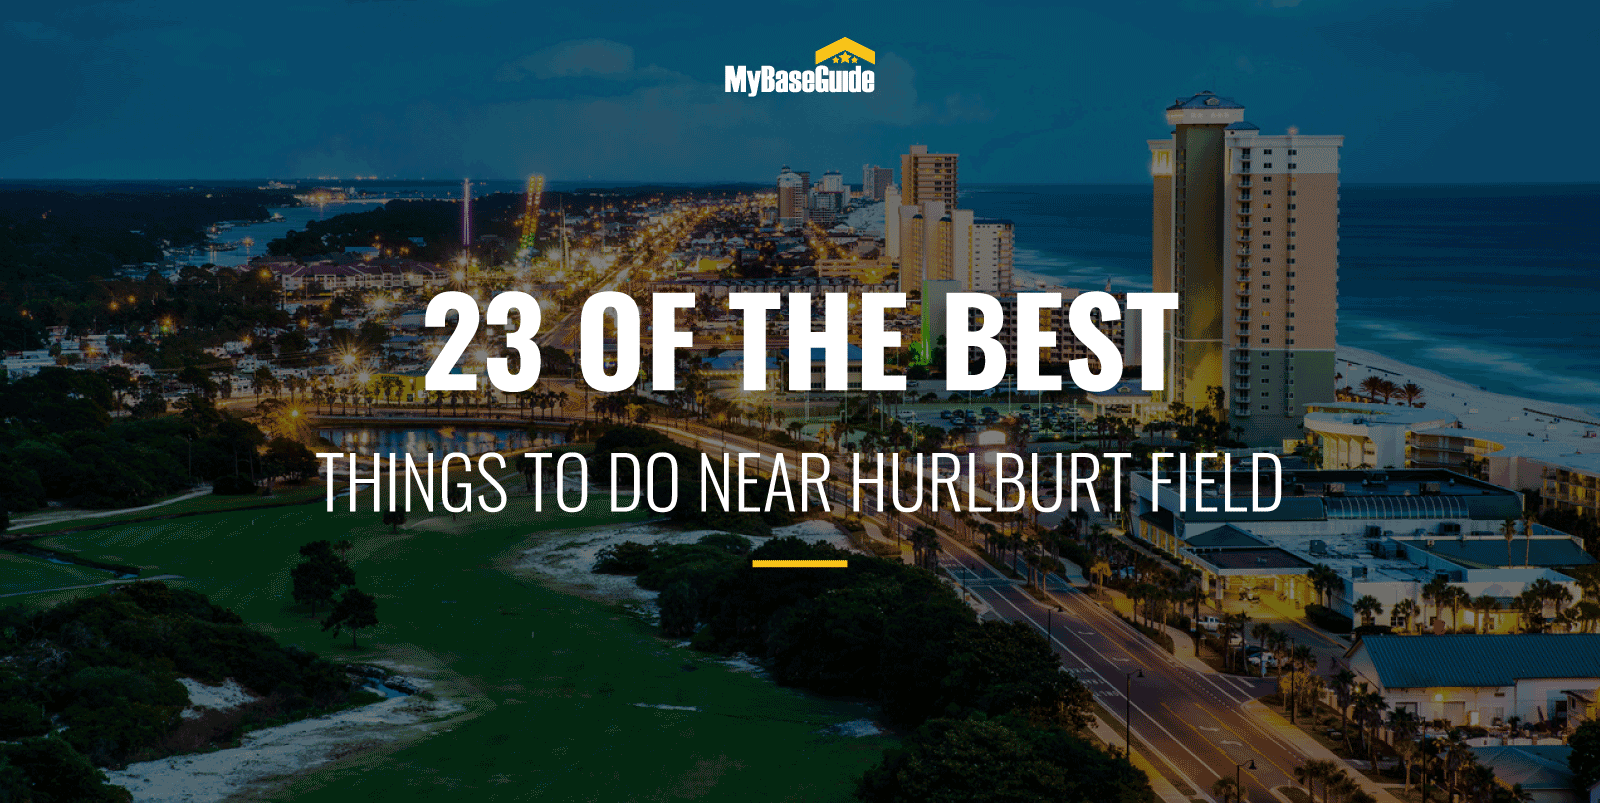 23 Of the Best Things to Do Near Hurlburt Field, FL